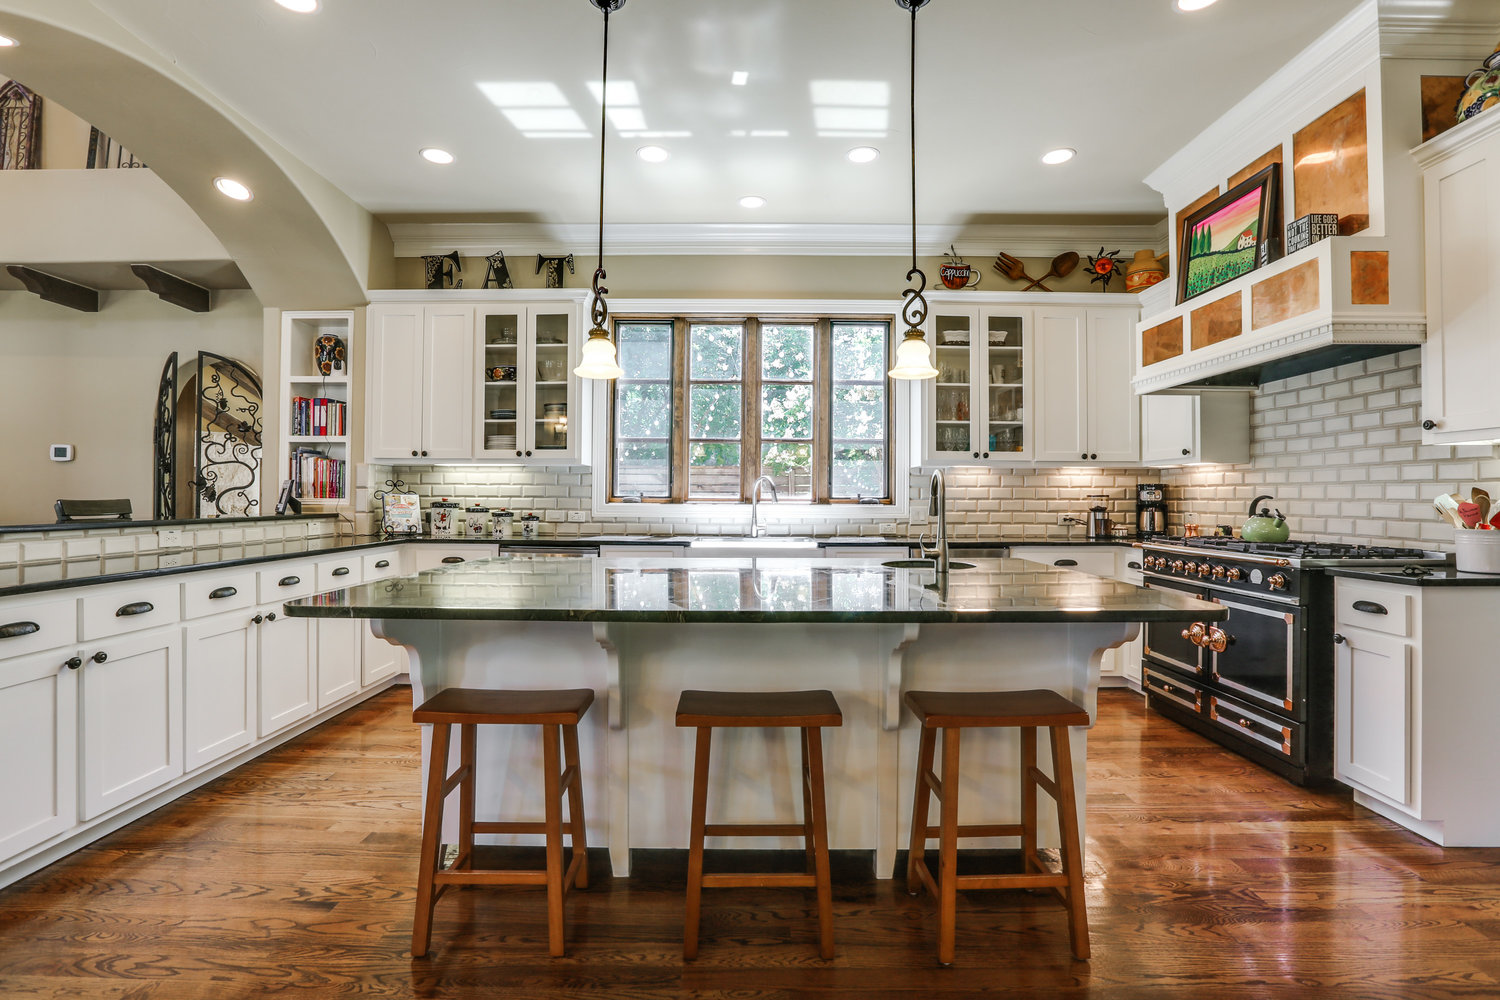 Custom Homes - Cookie cutter homes is not what we do. If you want to pick from a set of plans and build something similar to everyone else, we are probably not the builder for you. But, if you want a custom home designed and built uniquely for you, you have come to the right place.